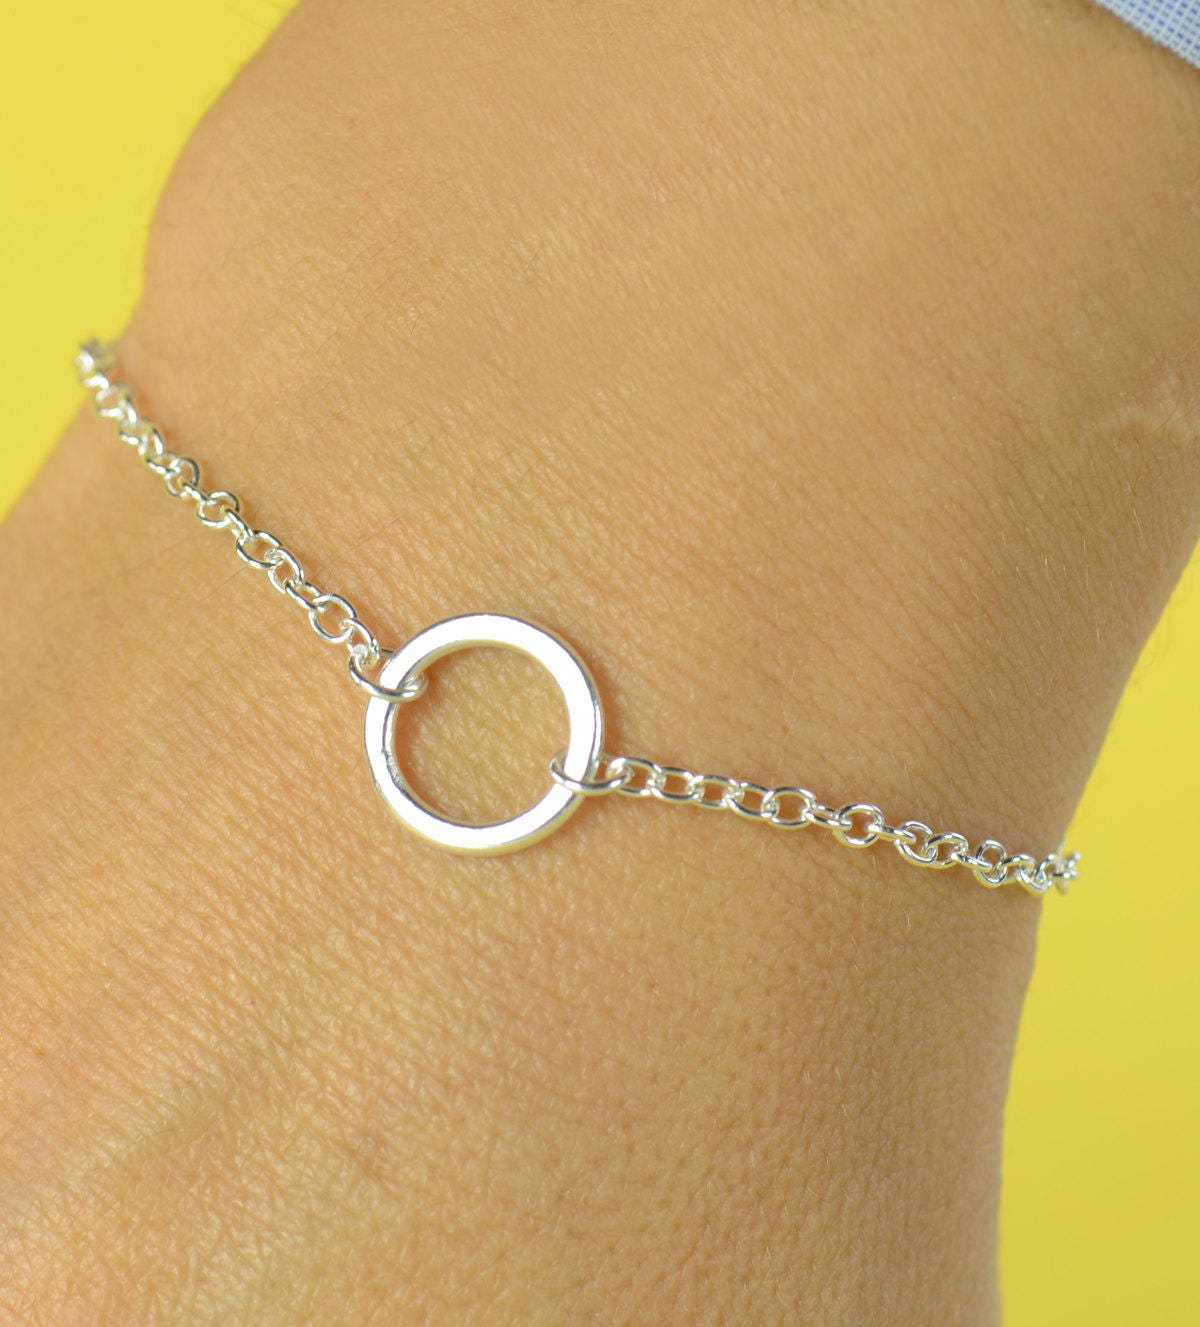 sale bracelet circle ottoman hands jewellery delicate outlet open